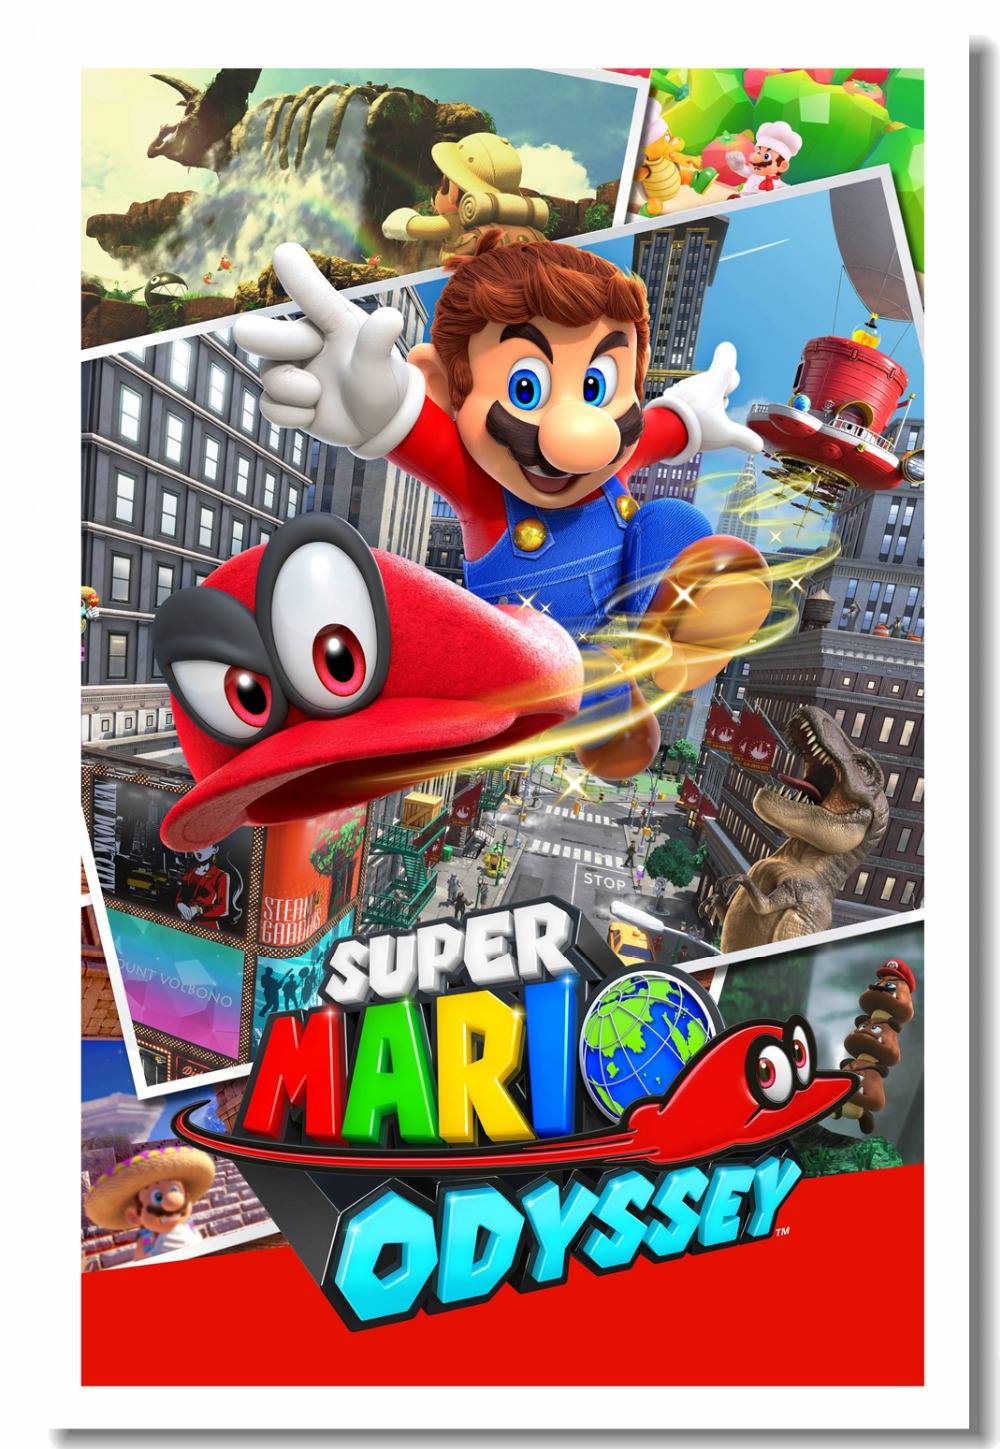 Us 5 59 30 Off Custom Canvas Wall Decals Super Mario Odyssey Poster Mario Bros Wall Sticker Mural Living Wallpaper Kids Room Decorations 0506 In